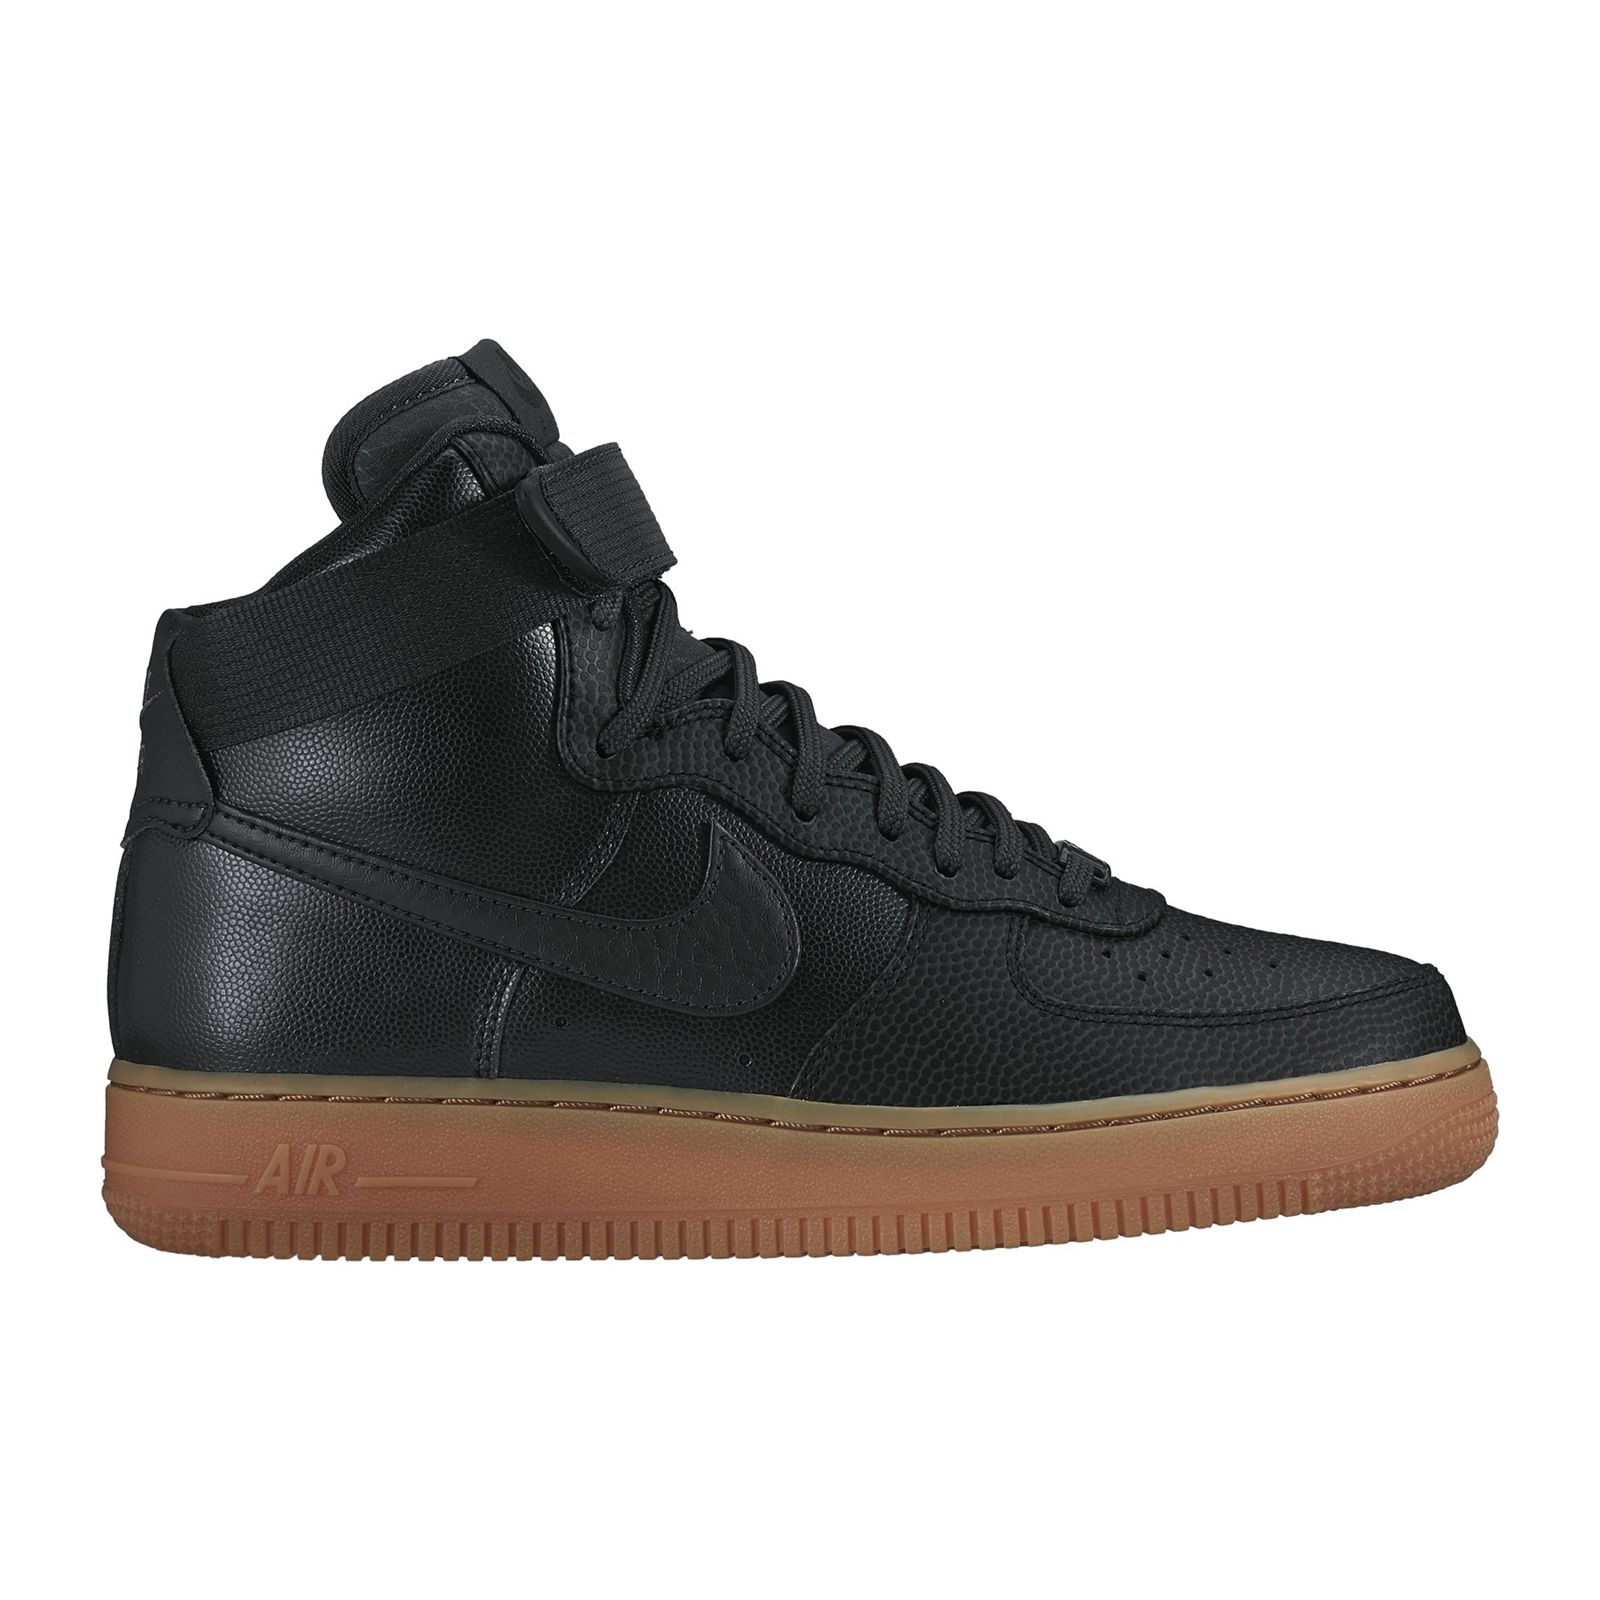 nike air force 1 baskets noir brandalley. Black Bedroom Furniture Sets. Home Design Ideas